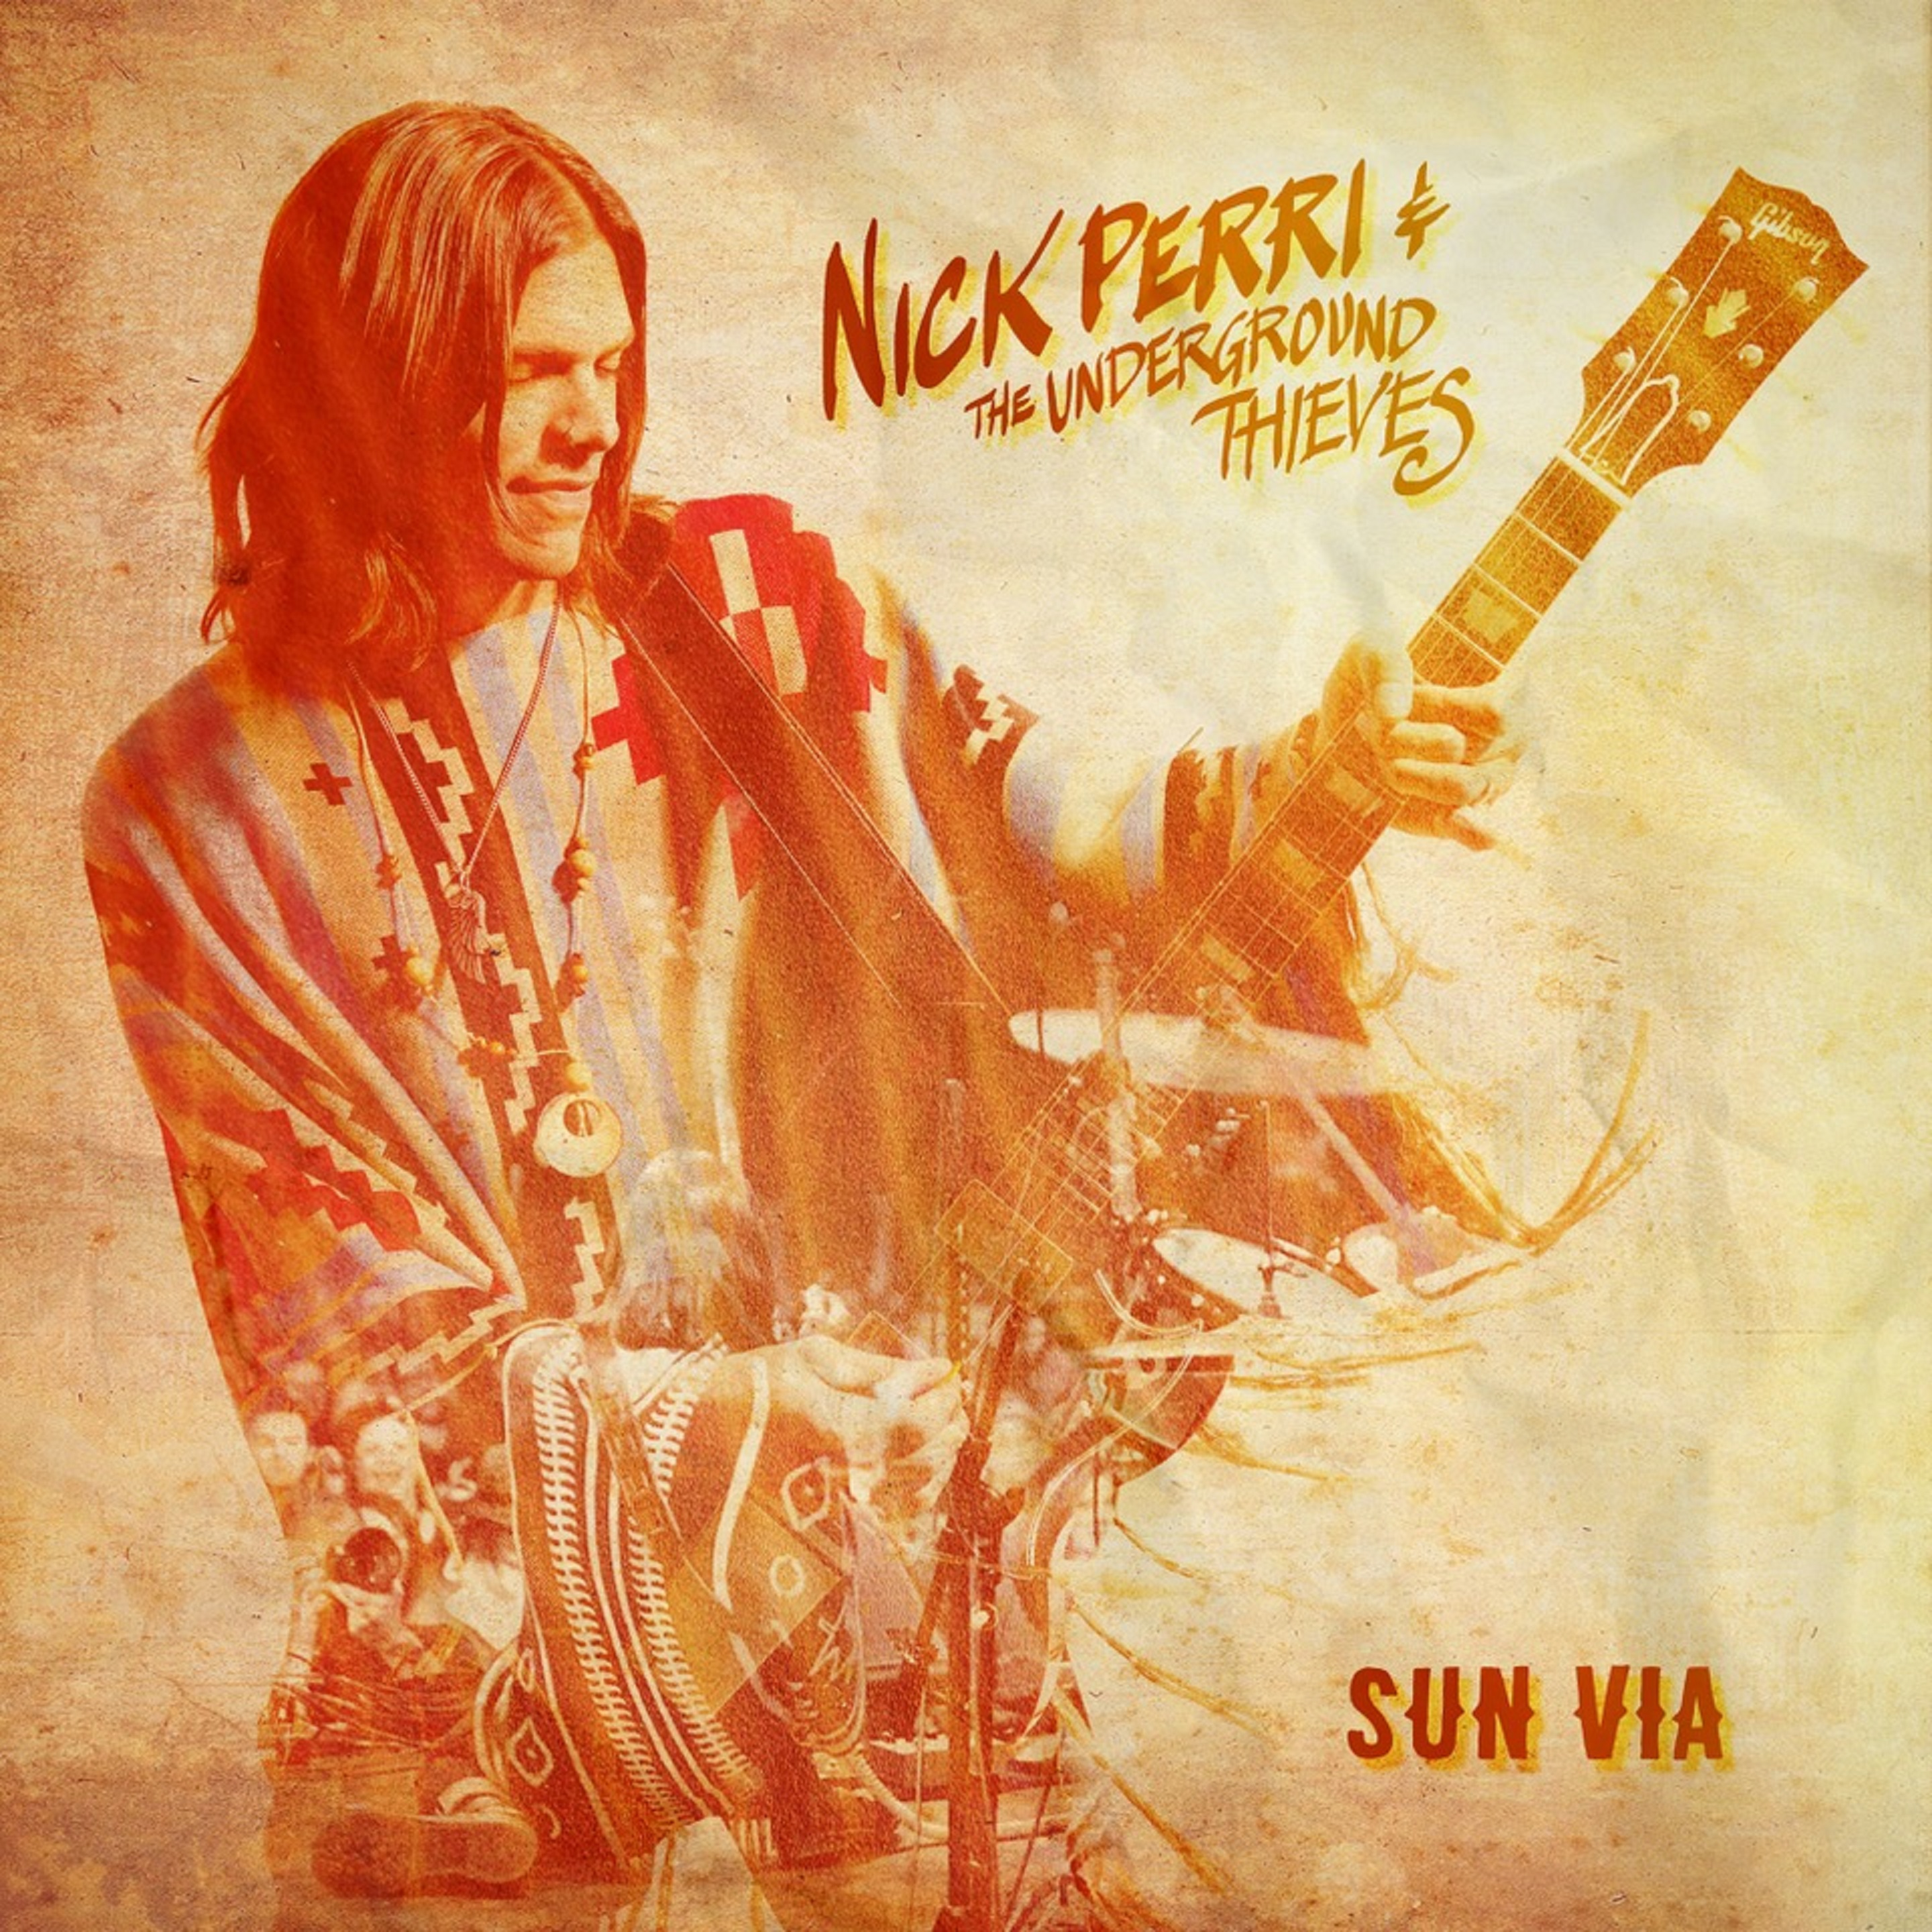 NICK PERRI & THE UNDERGROUND THIEVES ANNOUNCE DEBUT LP